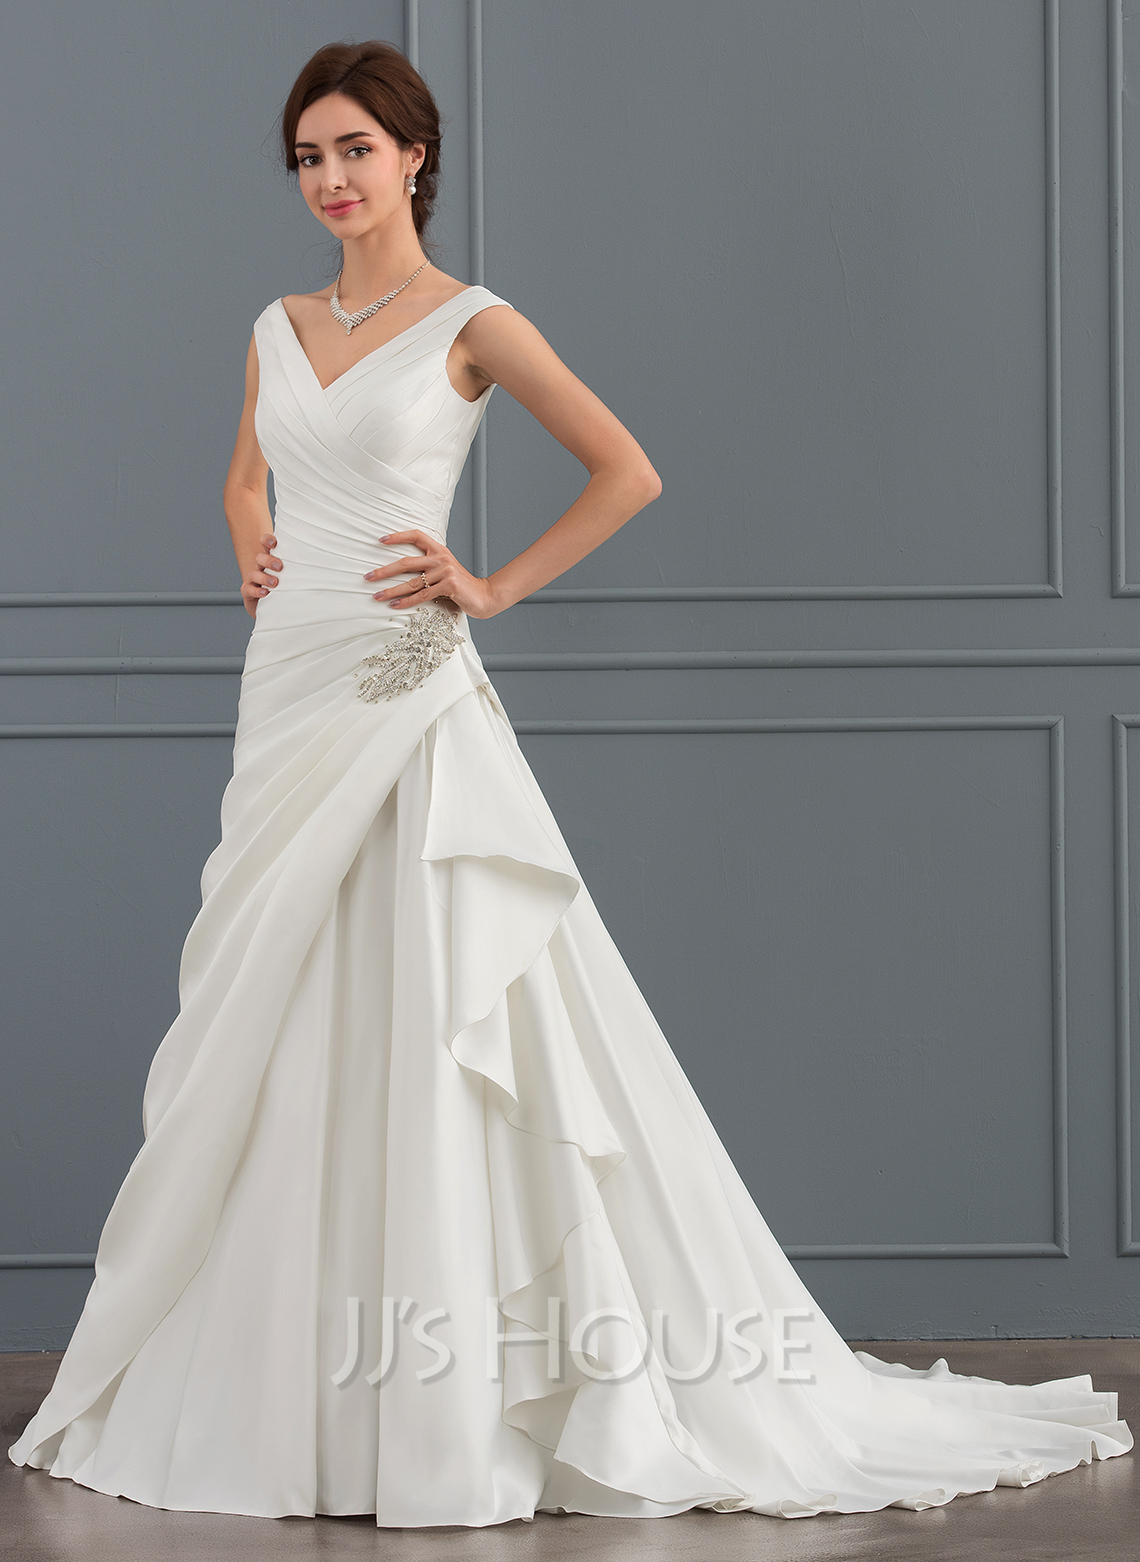 66e81d7553 A-Line/Princess V-neck Court Train Satin Wedding Dress With Beading.  Loading zoom